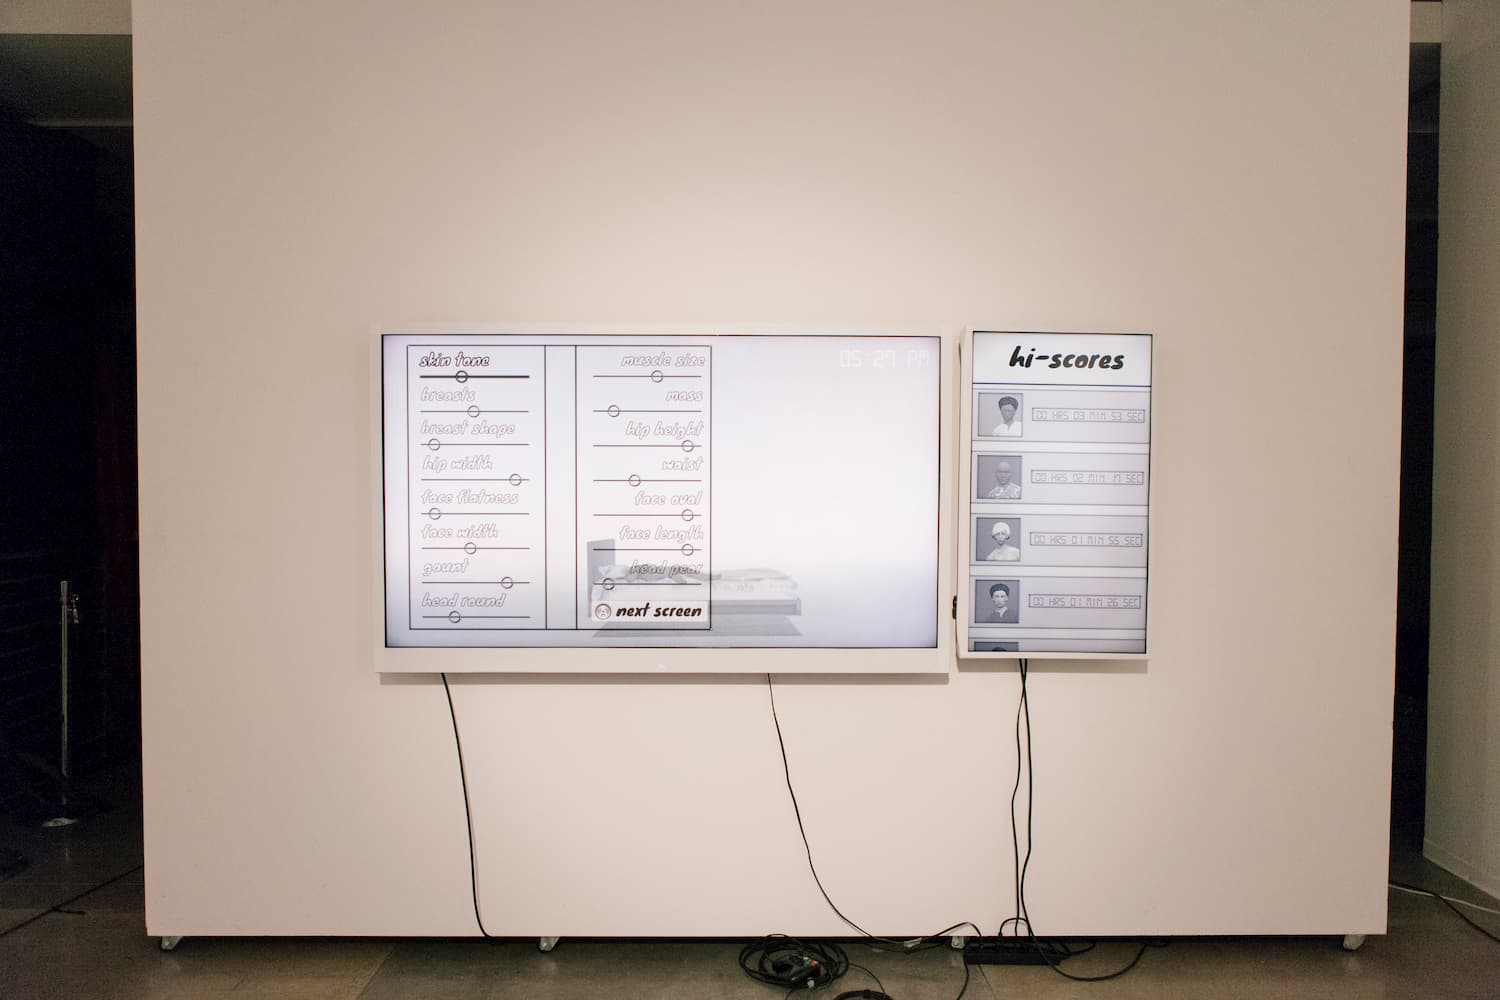 TV screens of character customization setup. The TV screens have white bezels.